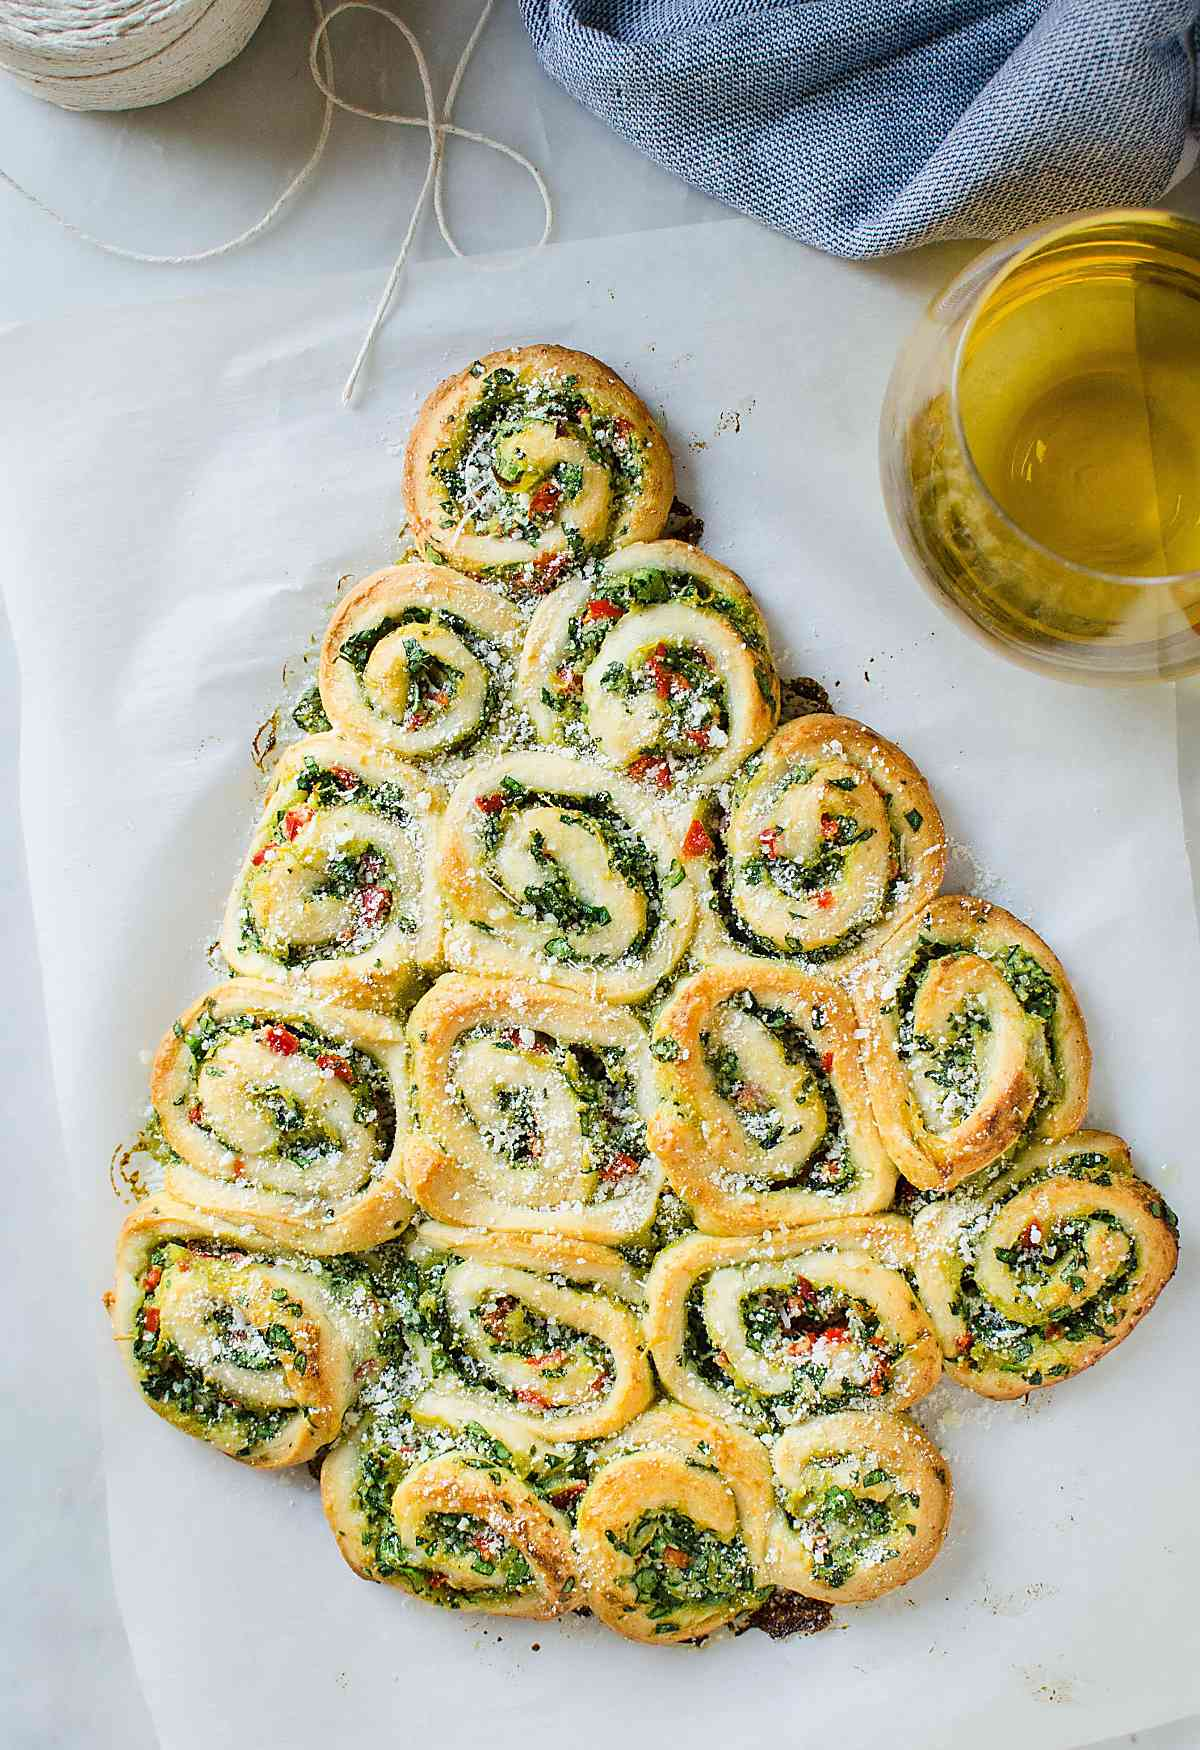 These super easy, nutritious & delicious artichoke spinach pinwheels are perfect appetizers for the holiday season. Quick preparation with tons of flavors.